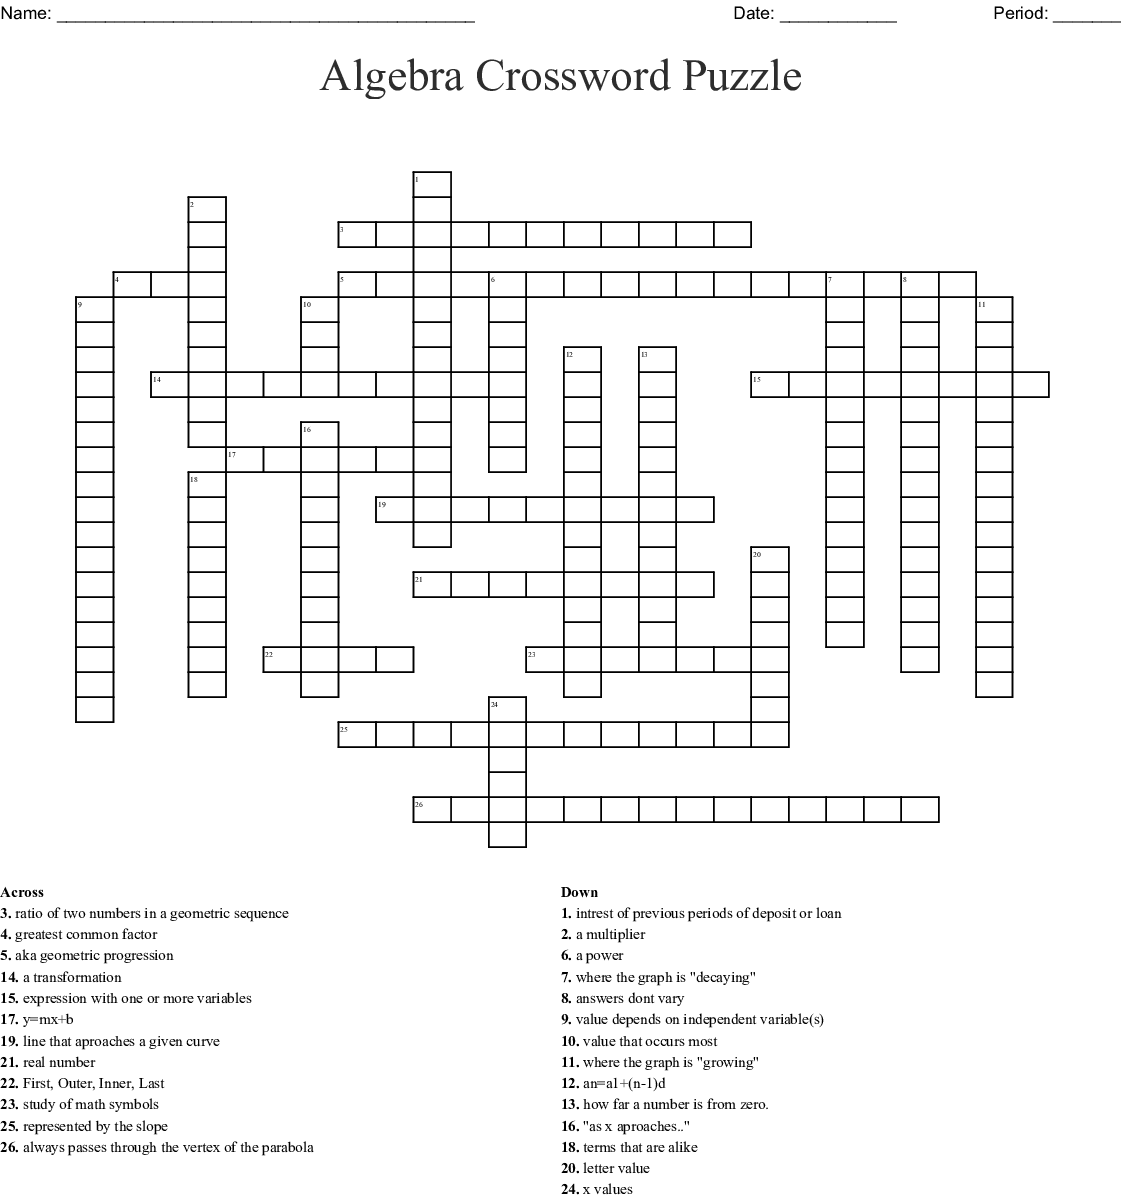 Similar To College Algebra Word Search - Wordmint